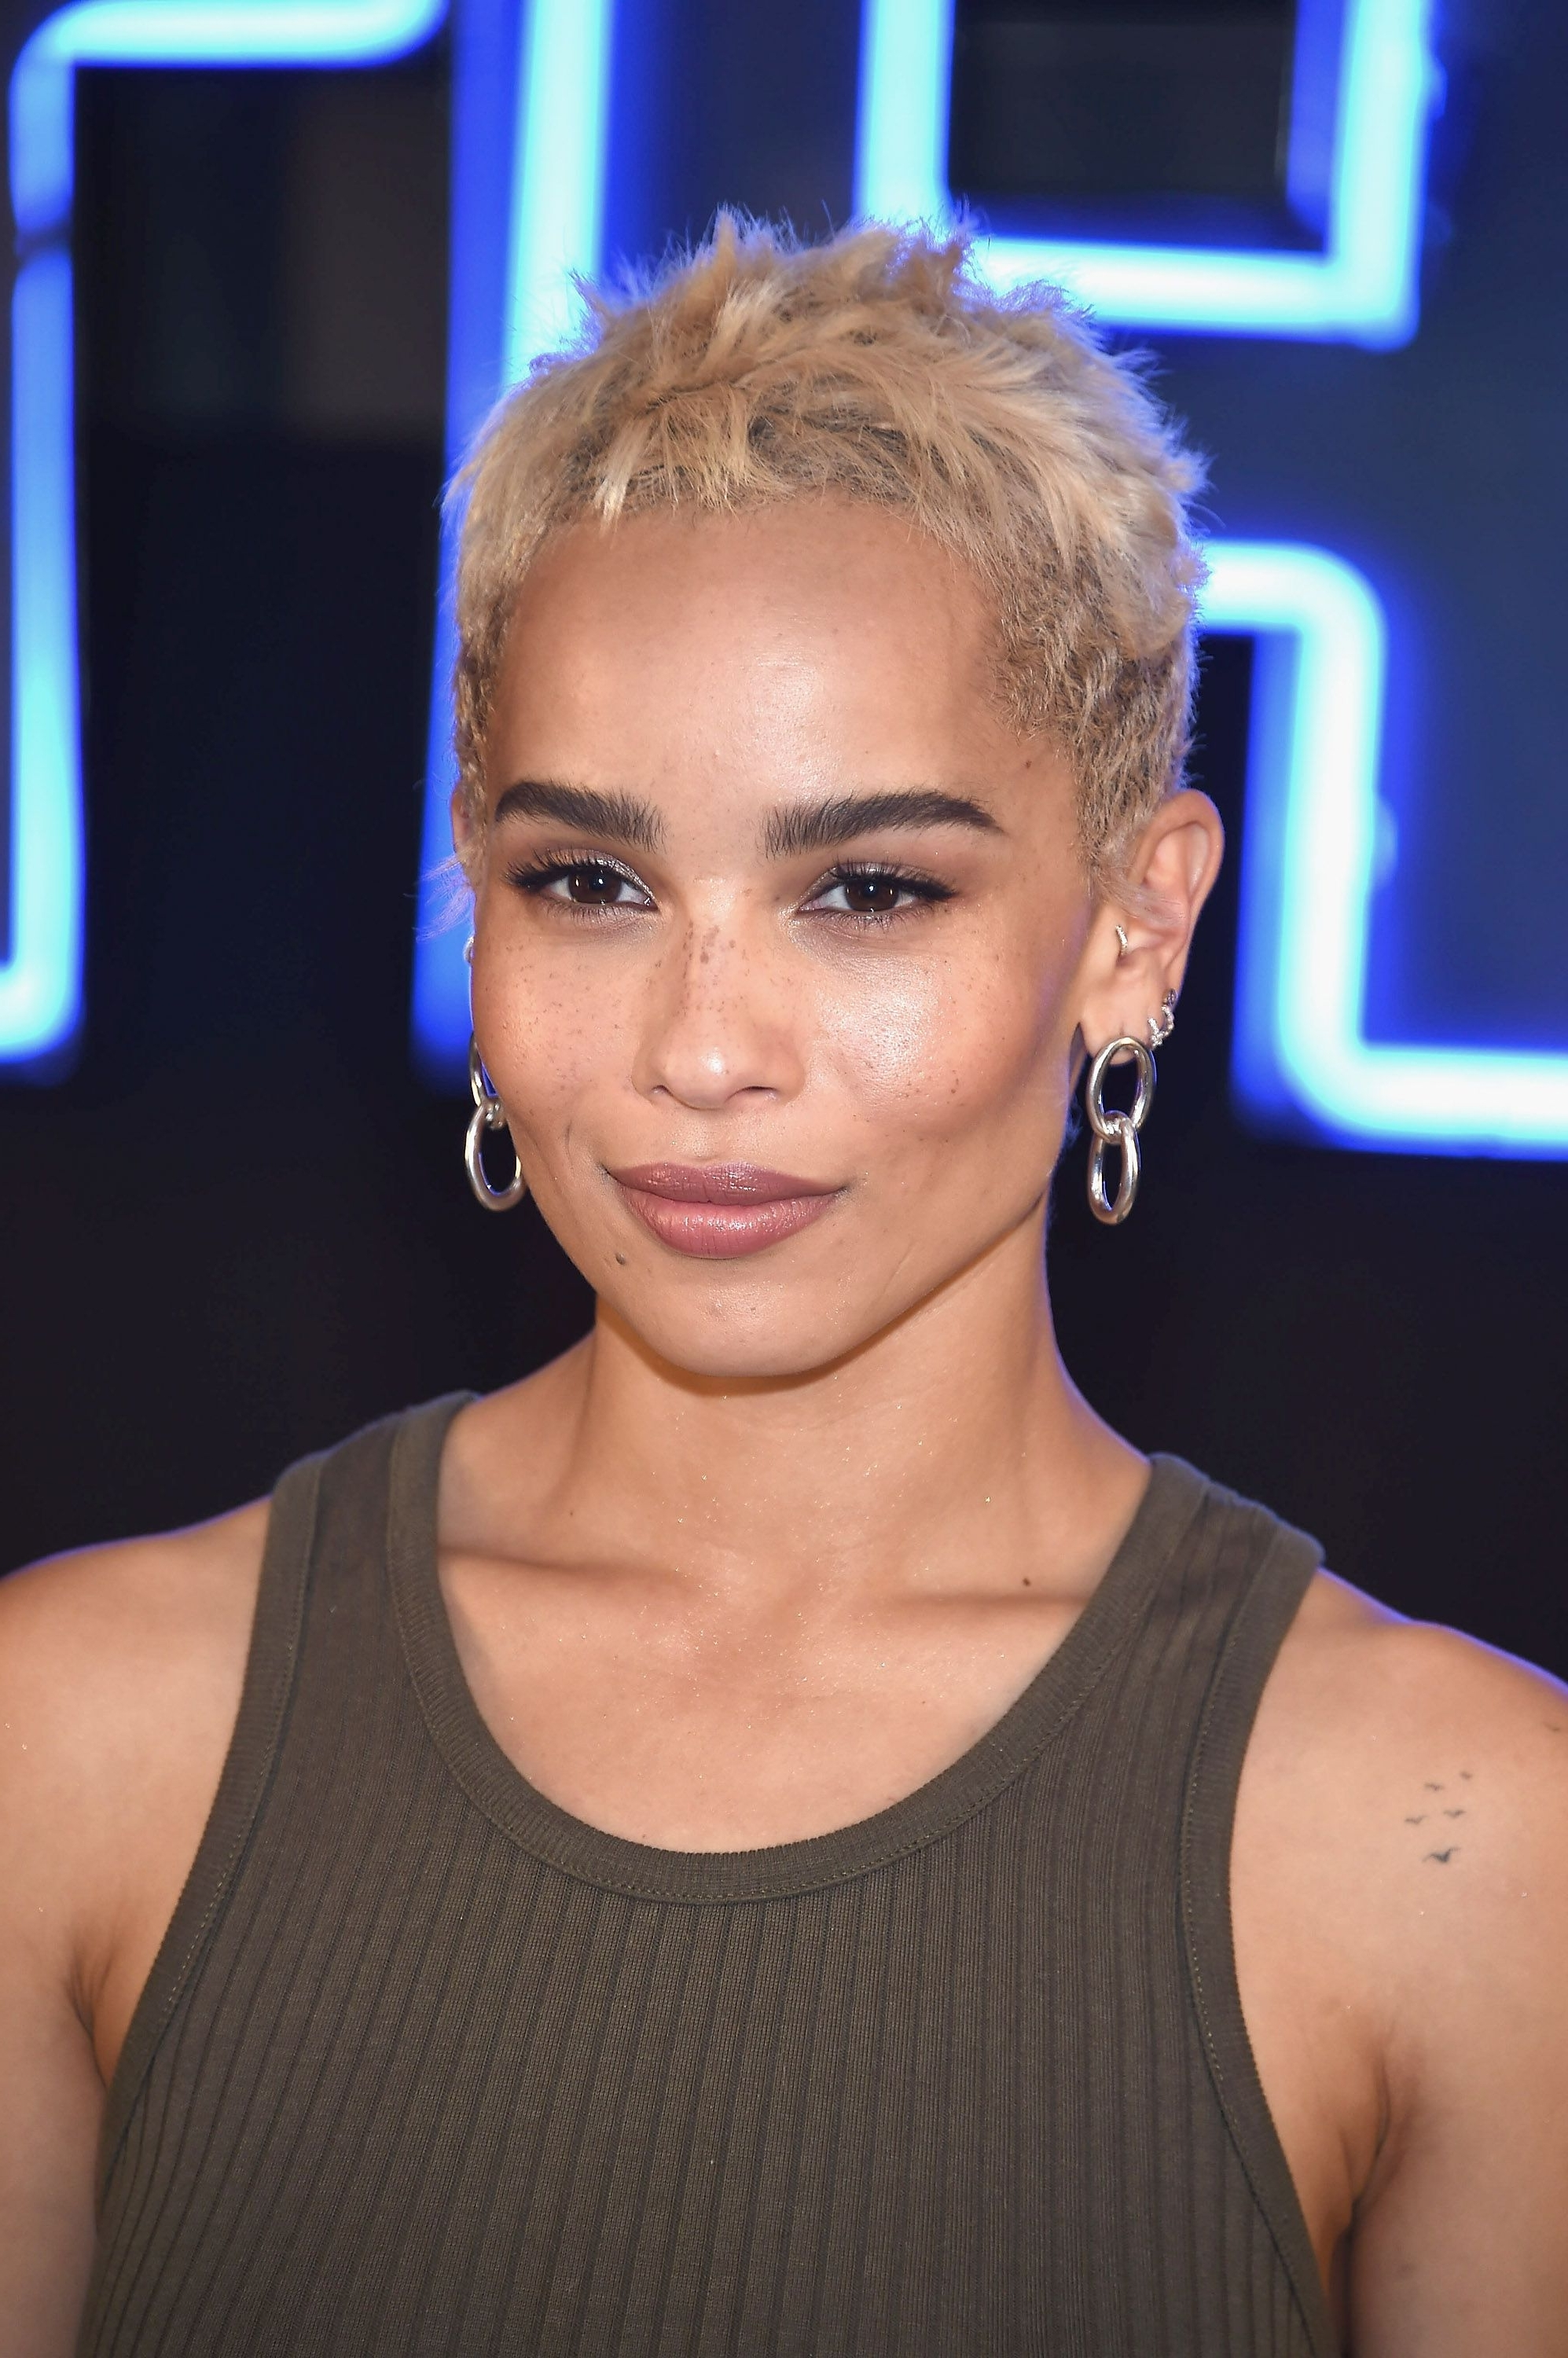 Pixie Cuts For 2018 – 34 Celebrity Hairstyle Ideas For Women Within Current Choppy Pixie Fade Hairstyles (View 13 of 20)